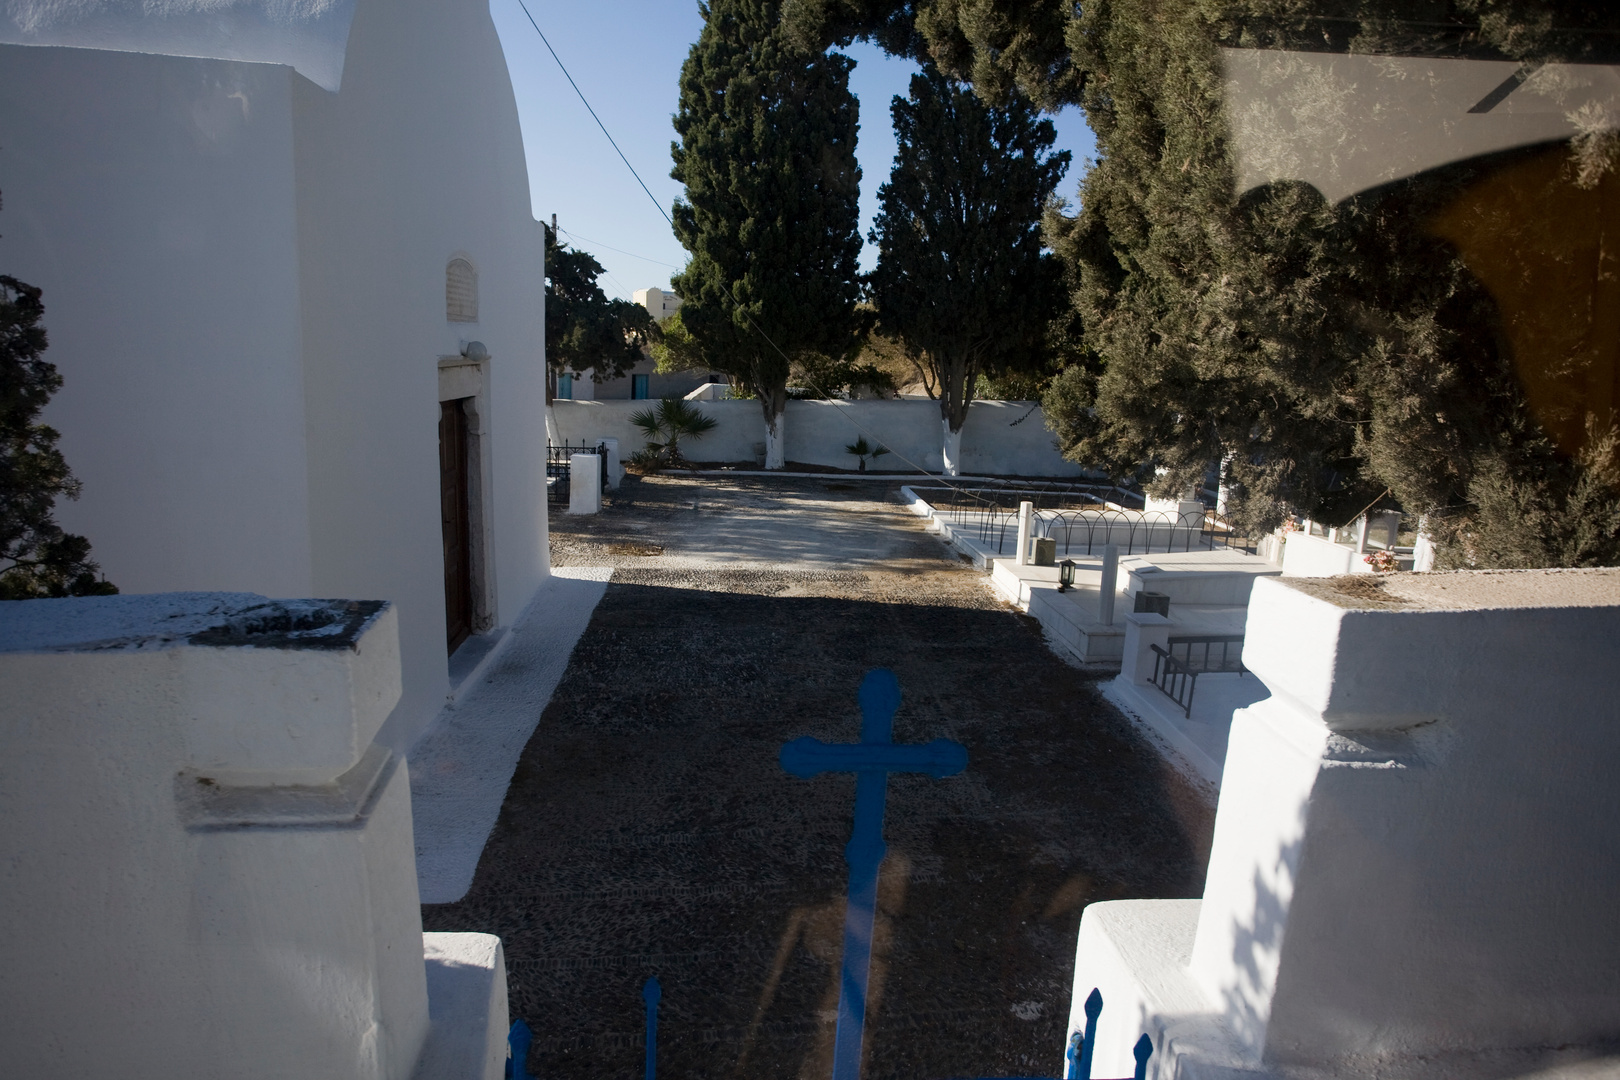 Patmos Graves, Greece 2